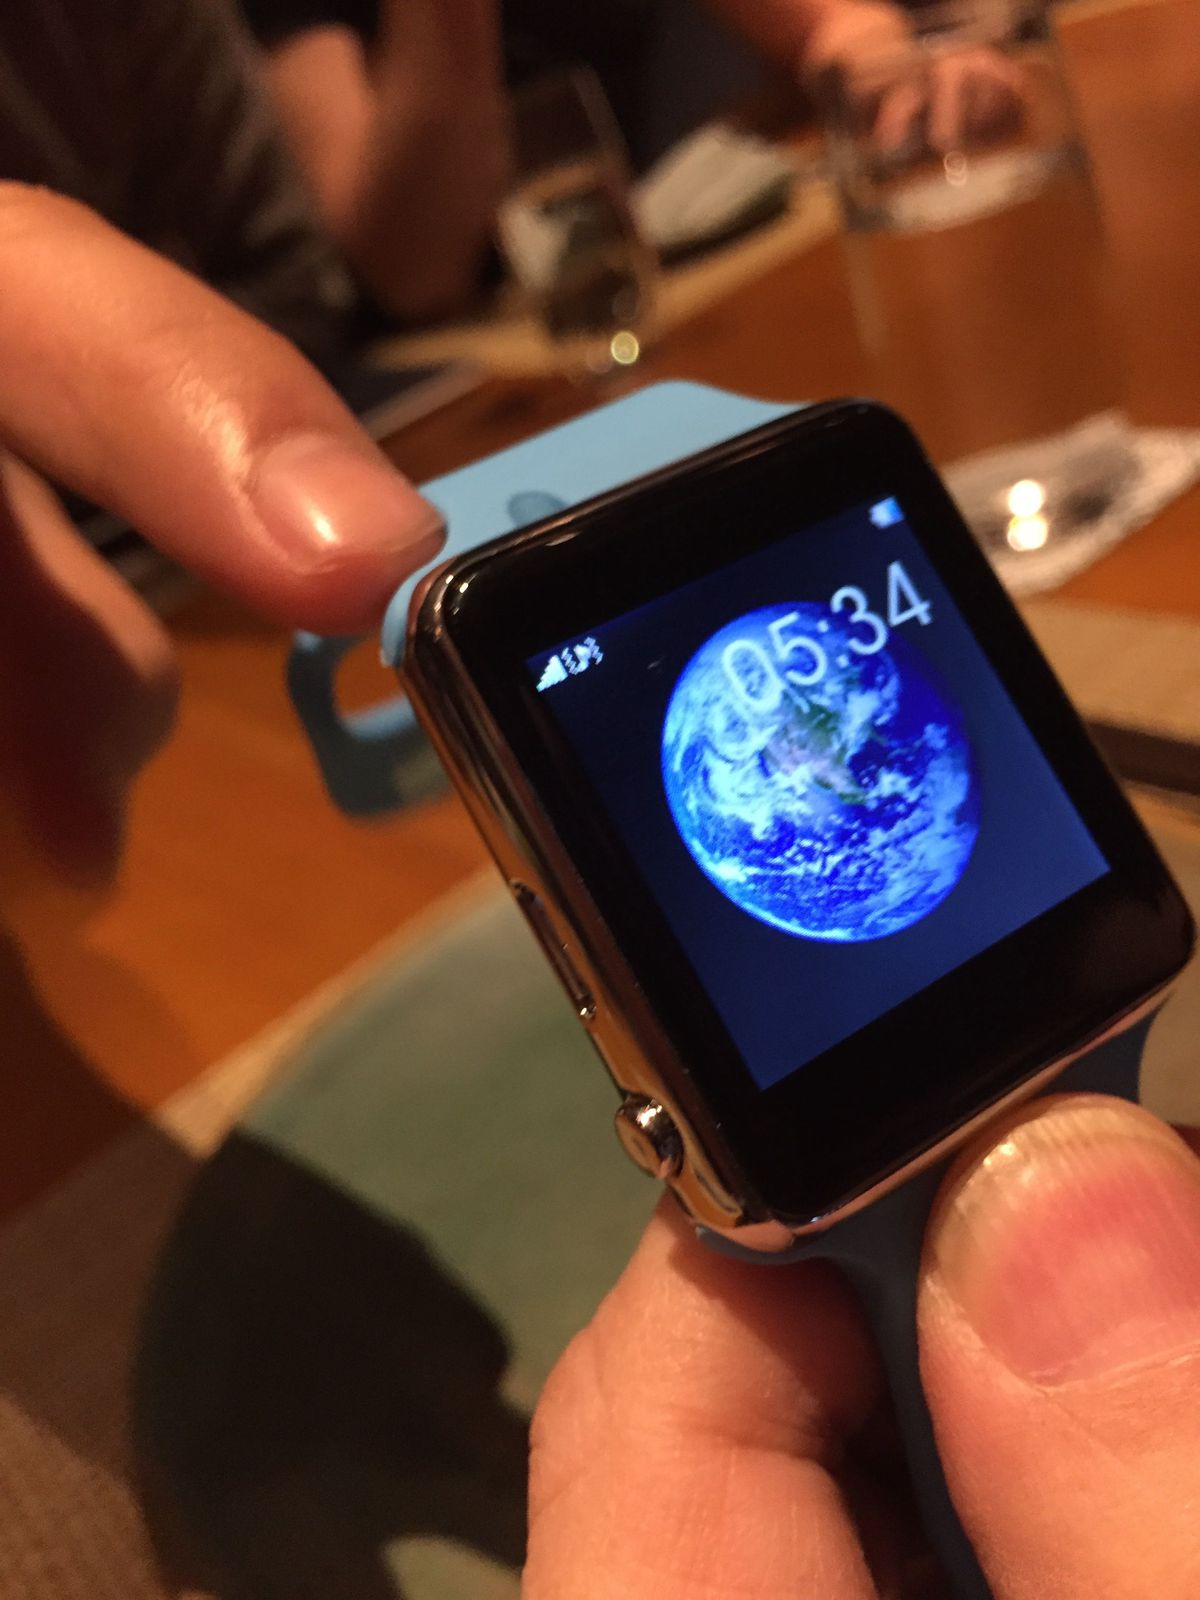 The fake watch uses a familiar Apple image on one screen.